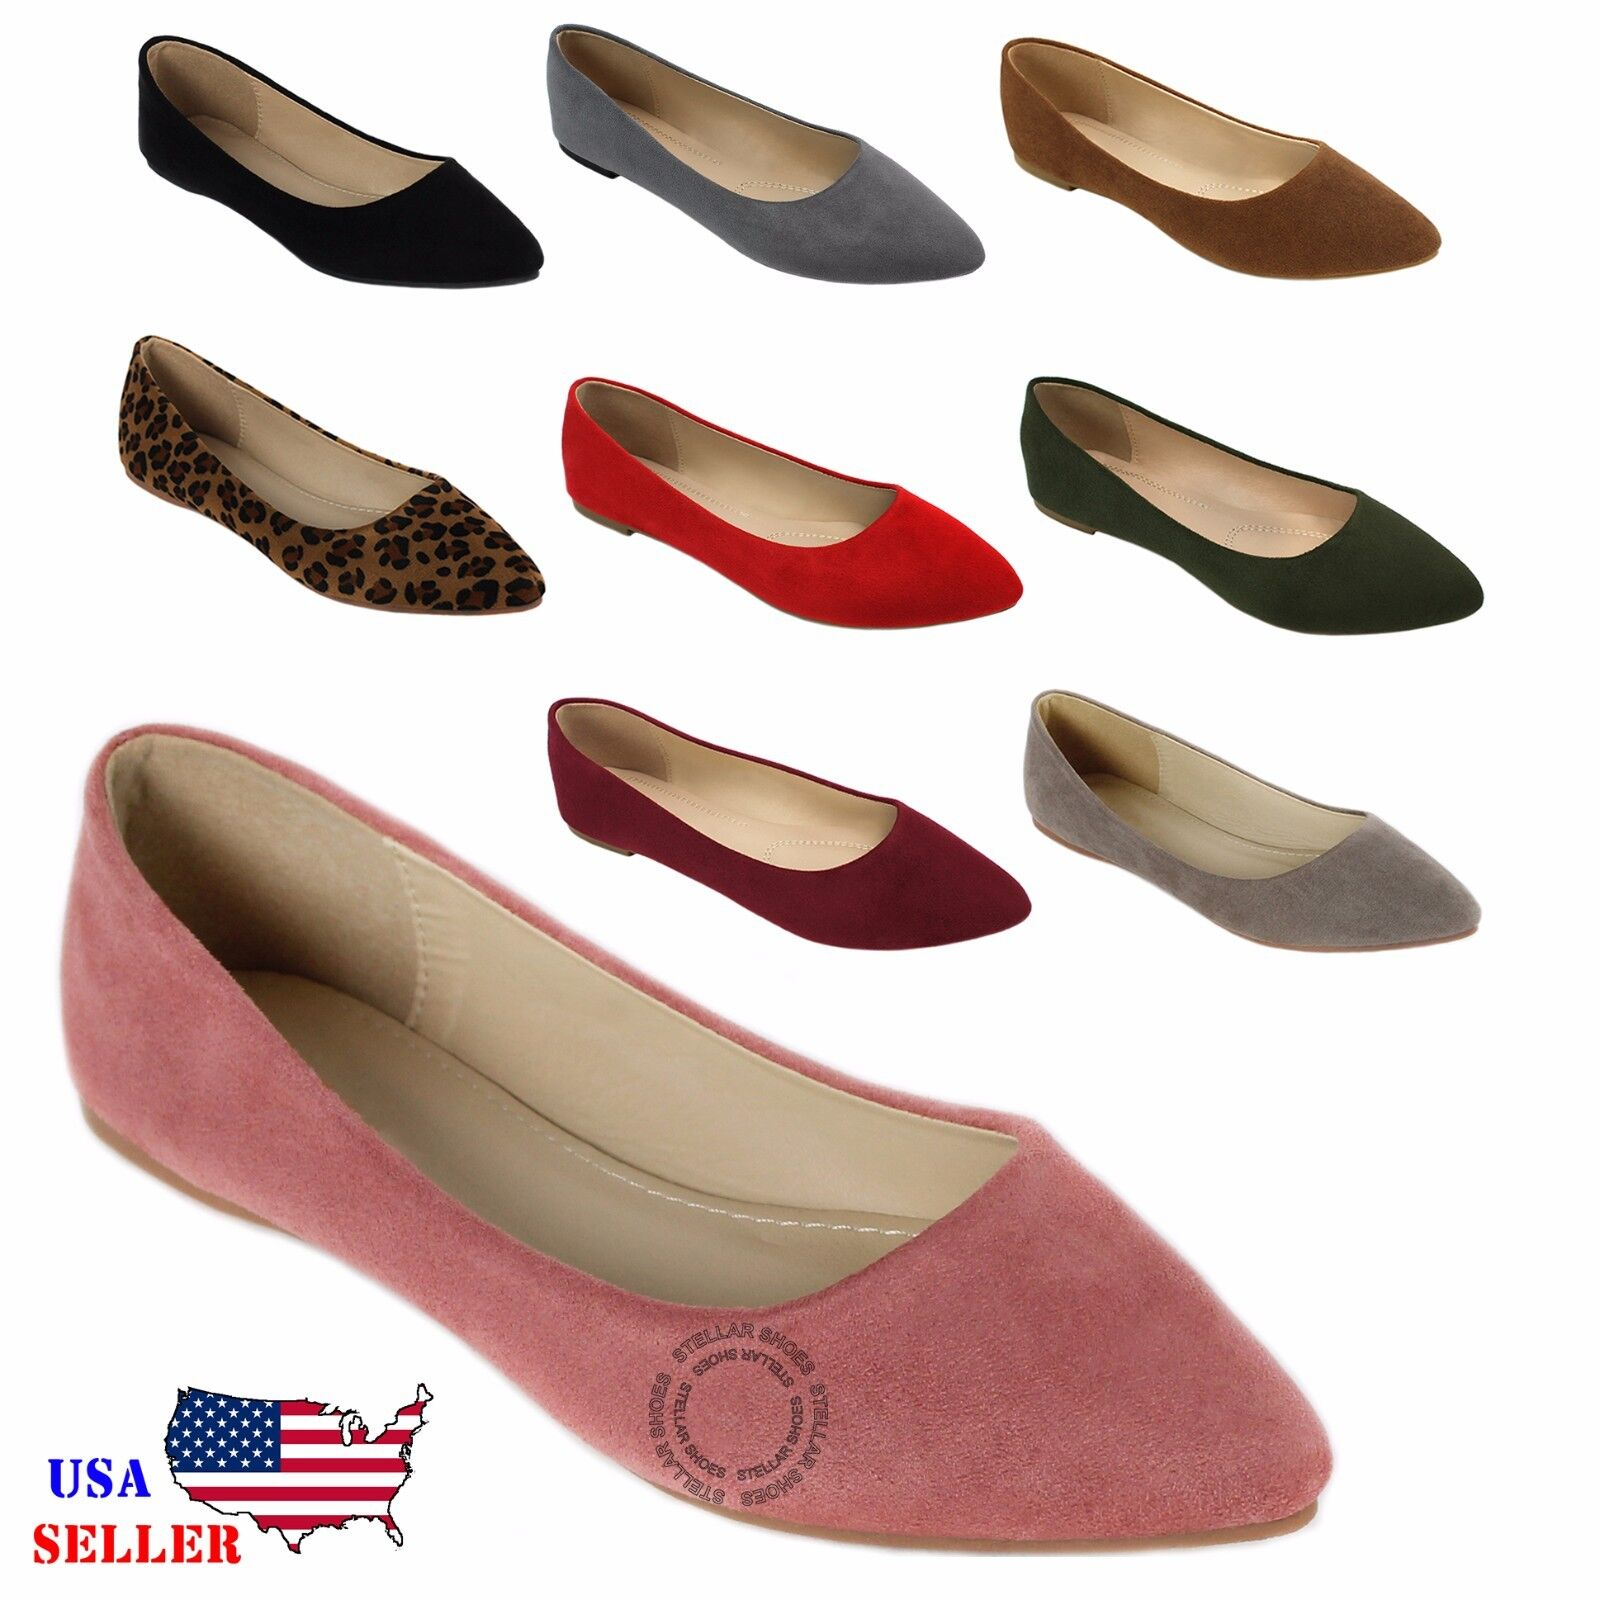 NEW Women's Classic Suede Pointy Toe Ballet Flat Shoes